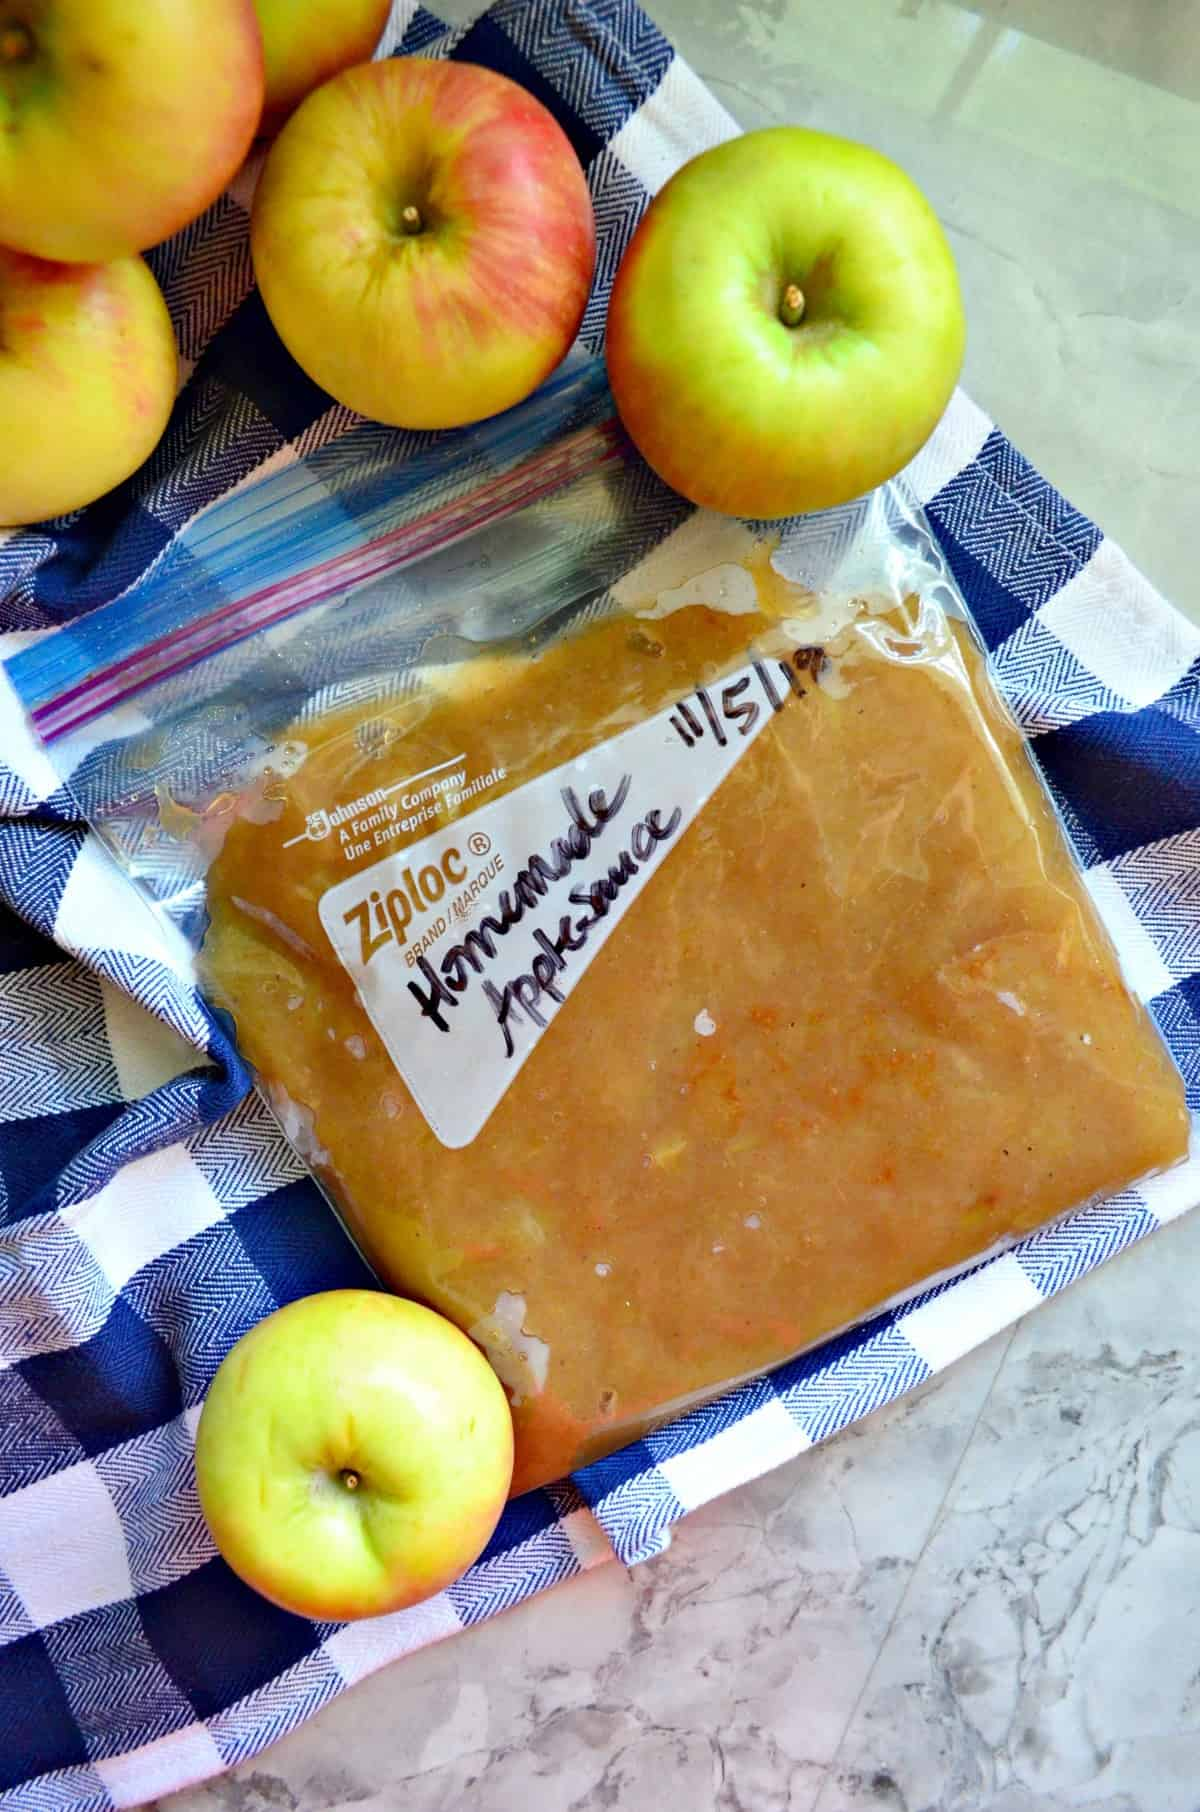 top view of labeled homemade applesauce in ziplock bag with apples on tablecloth.